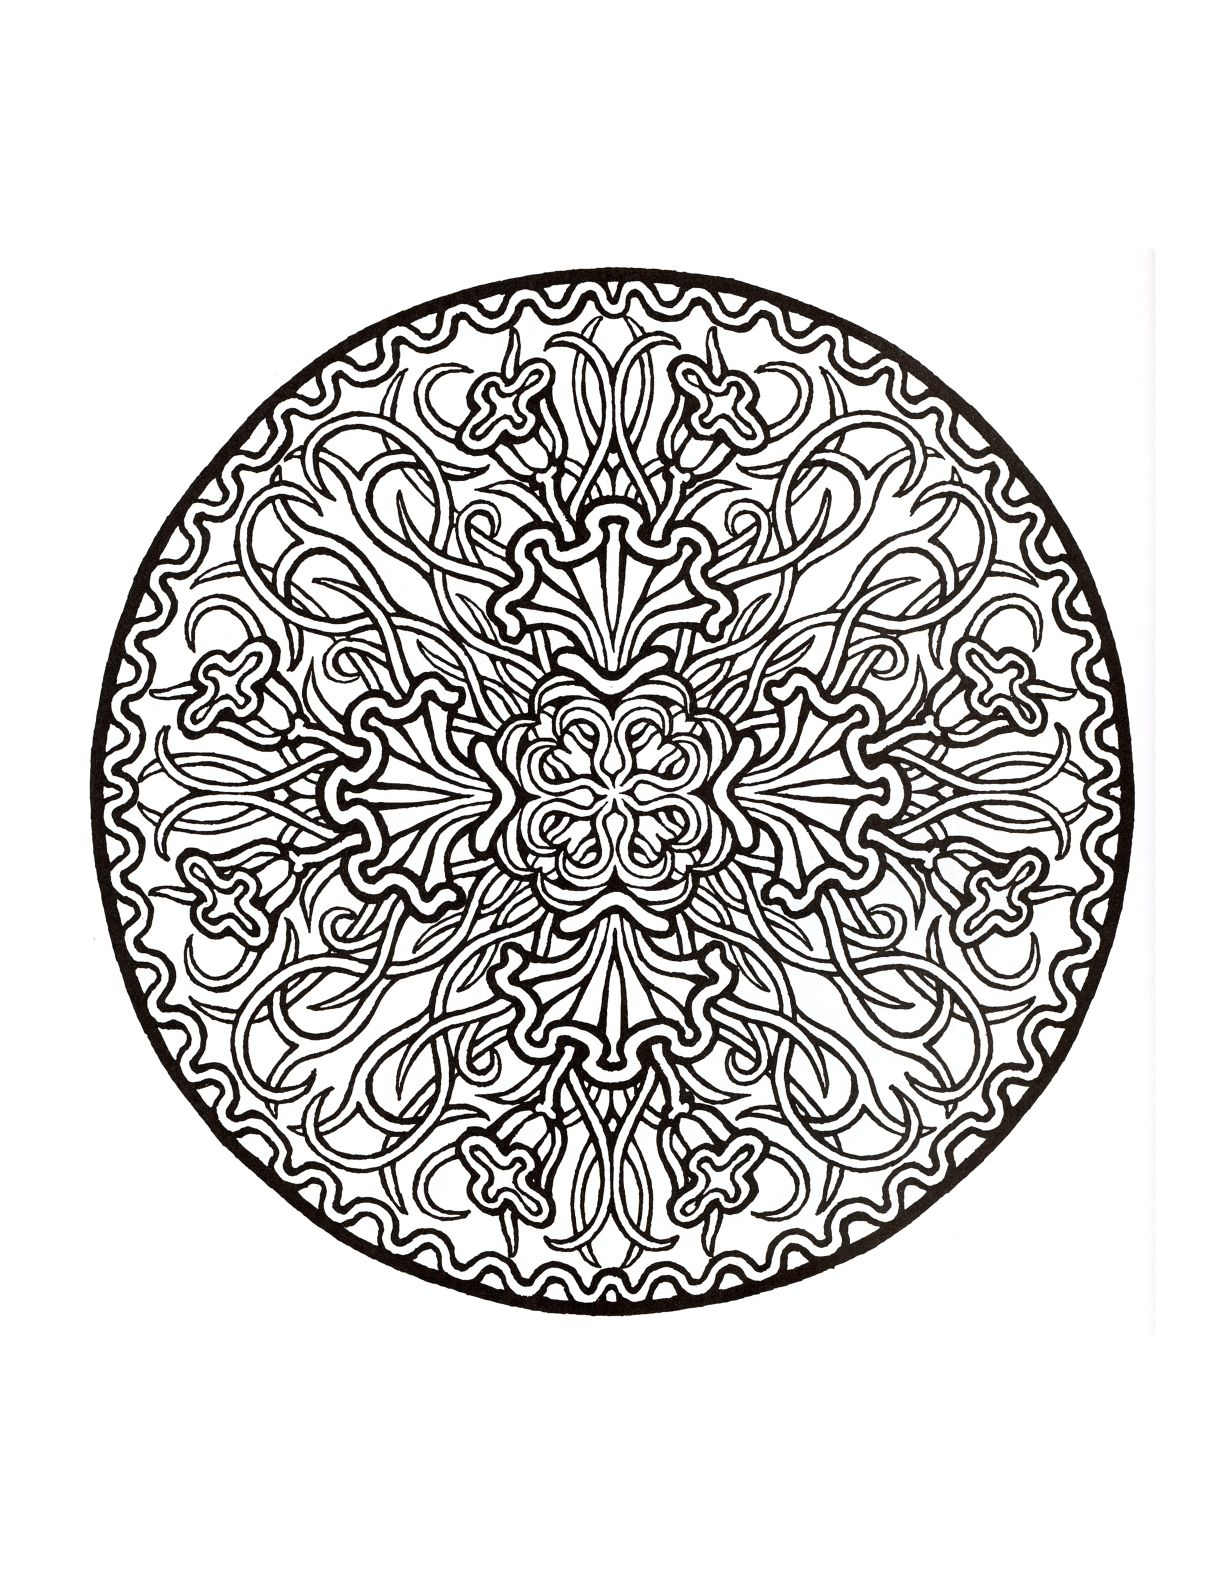 Jewish mandala coloring pages - Mystical Mandala Coloring Book